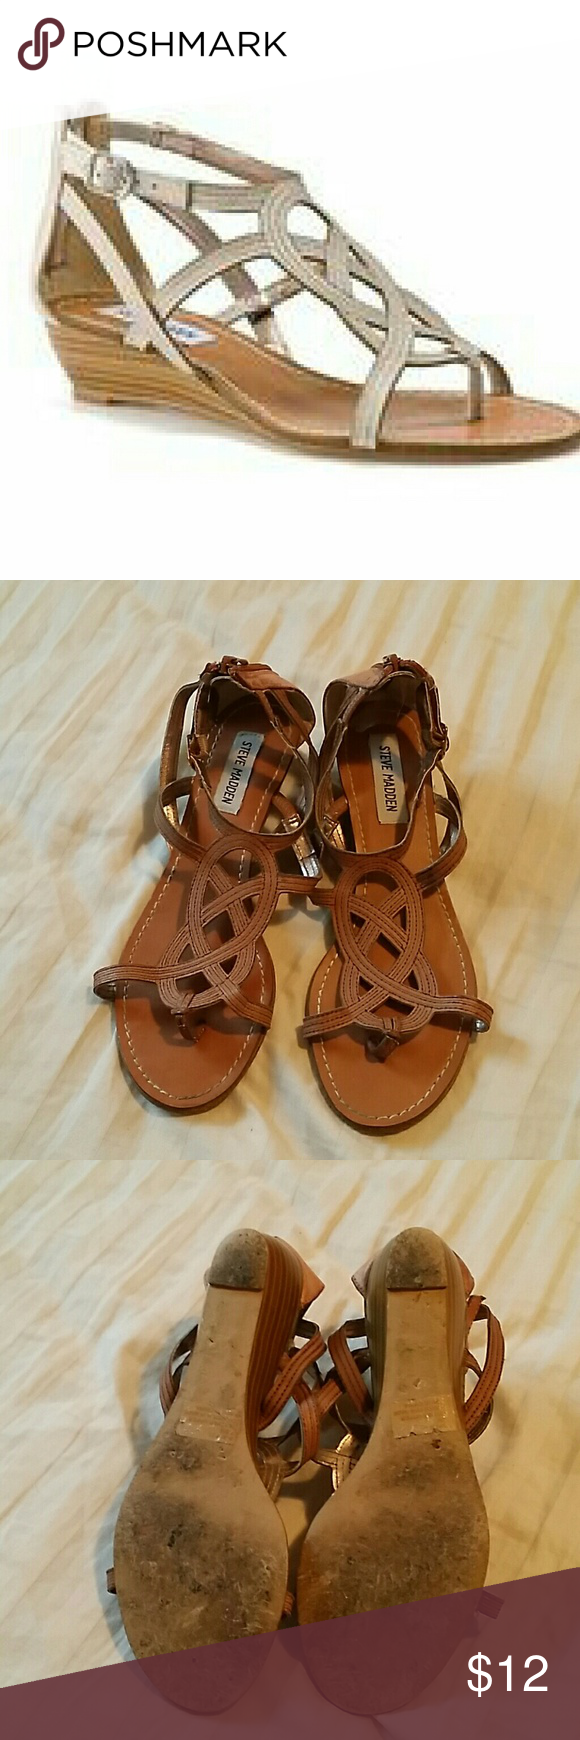 Steve Madden wedge sandal Can be casual or more formal. Very versatile and comfortable. Just too big for me. Shows signs of wear as shown in photos. Open to offers. Steve Madden Shoes Sandals